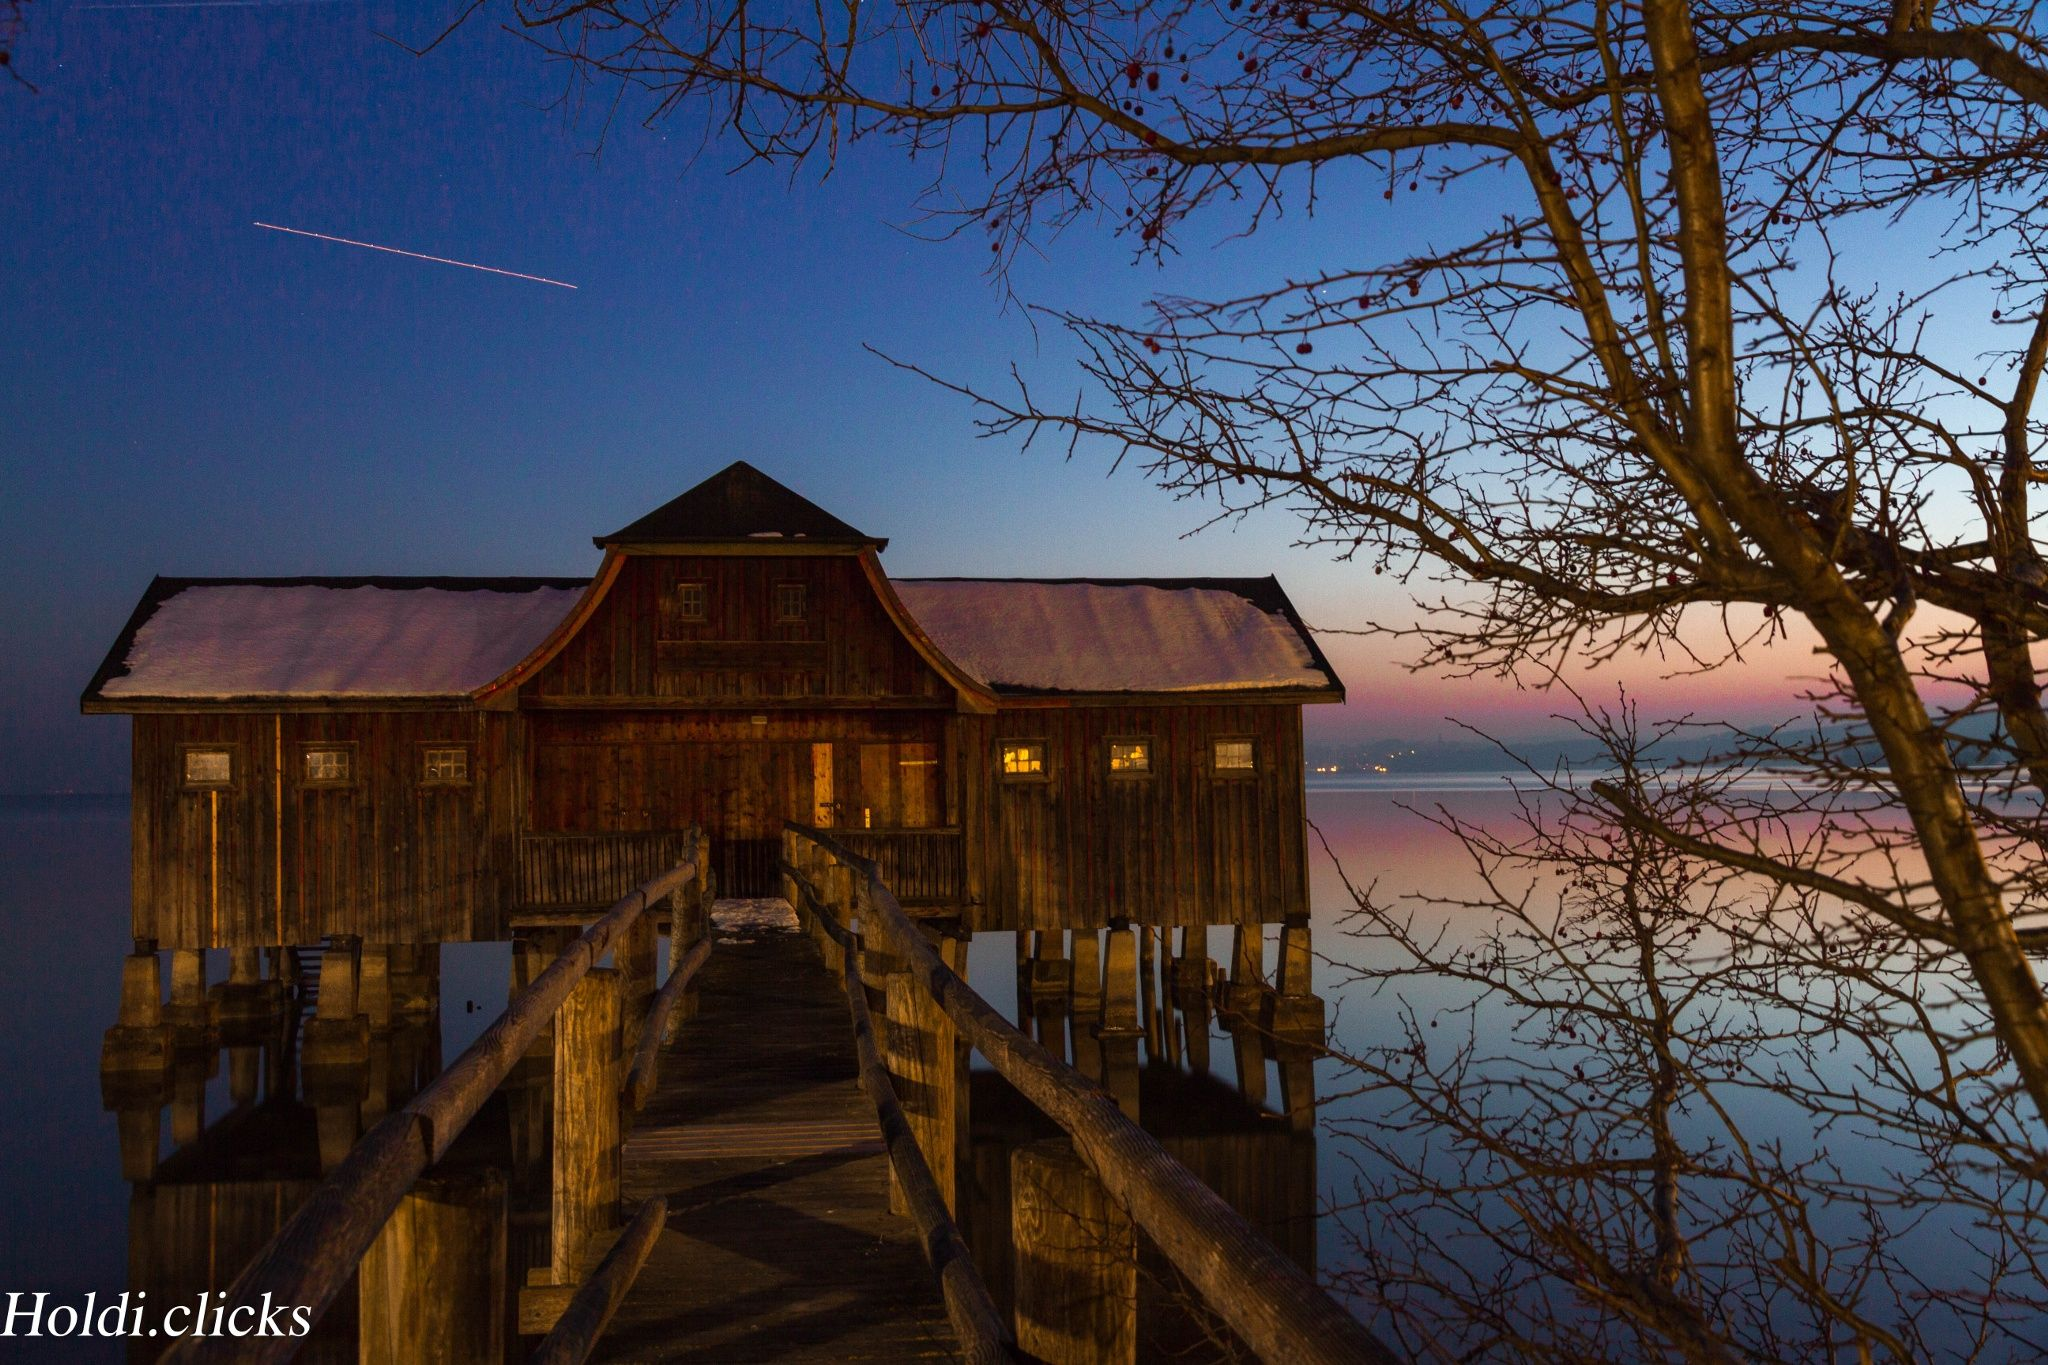 Fisherman's house by Bernd Holdenried on 500px